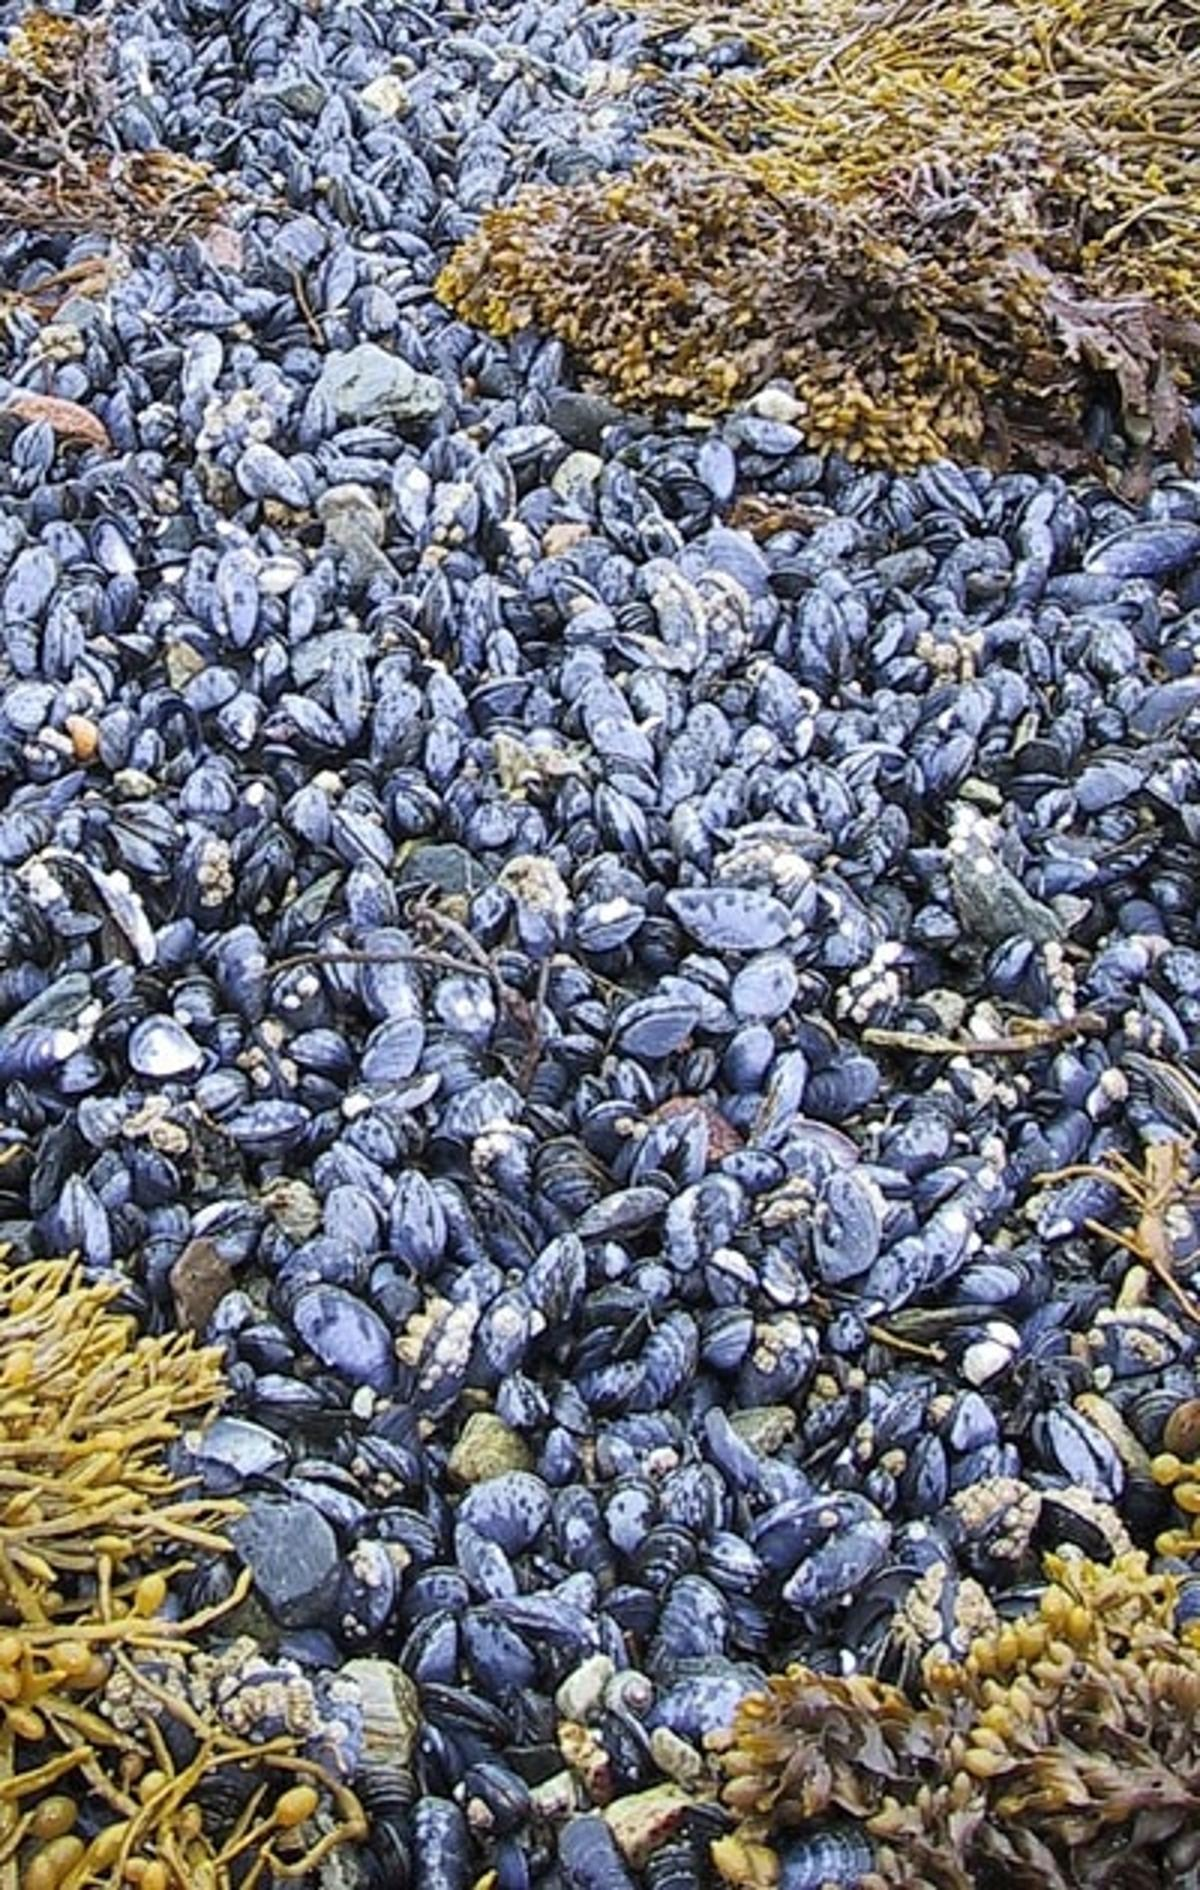 Marine Mussel glue could be the new natural synthetic adhesive after surgery